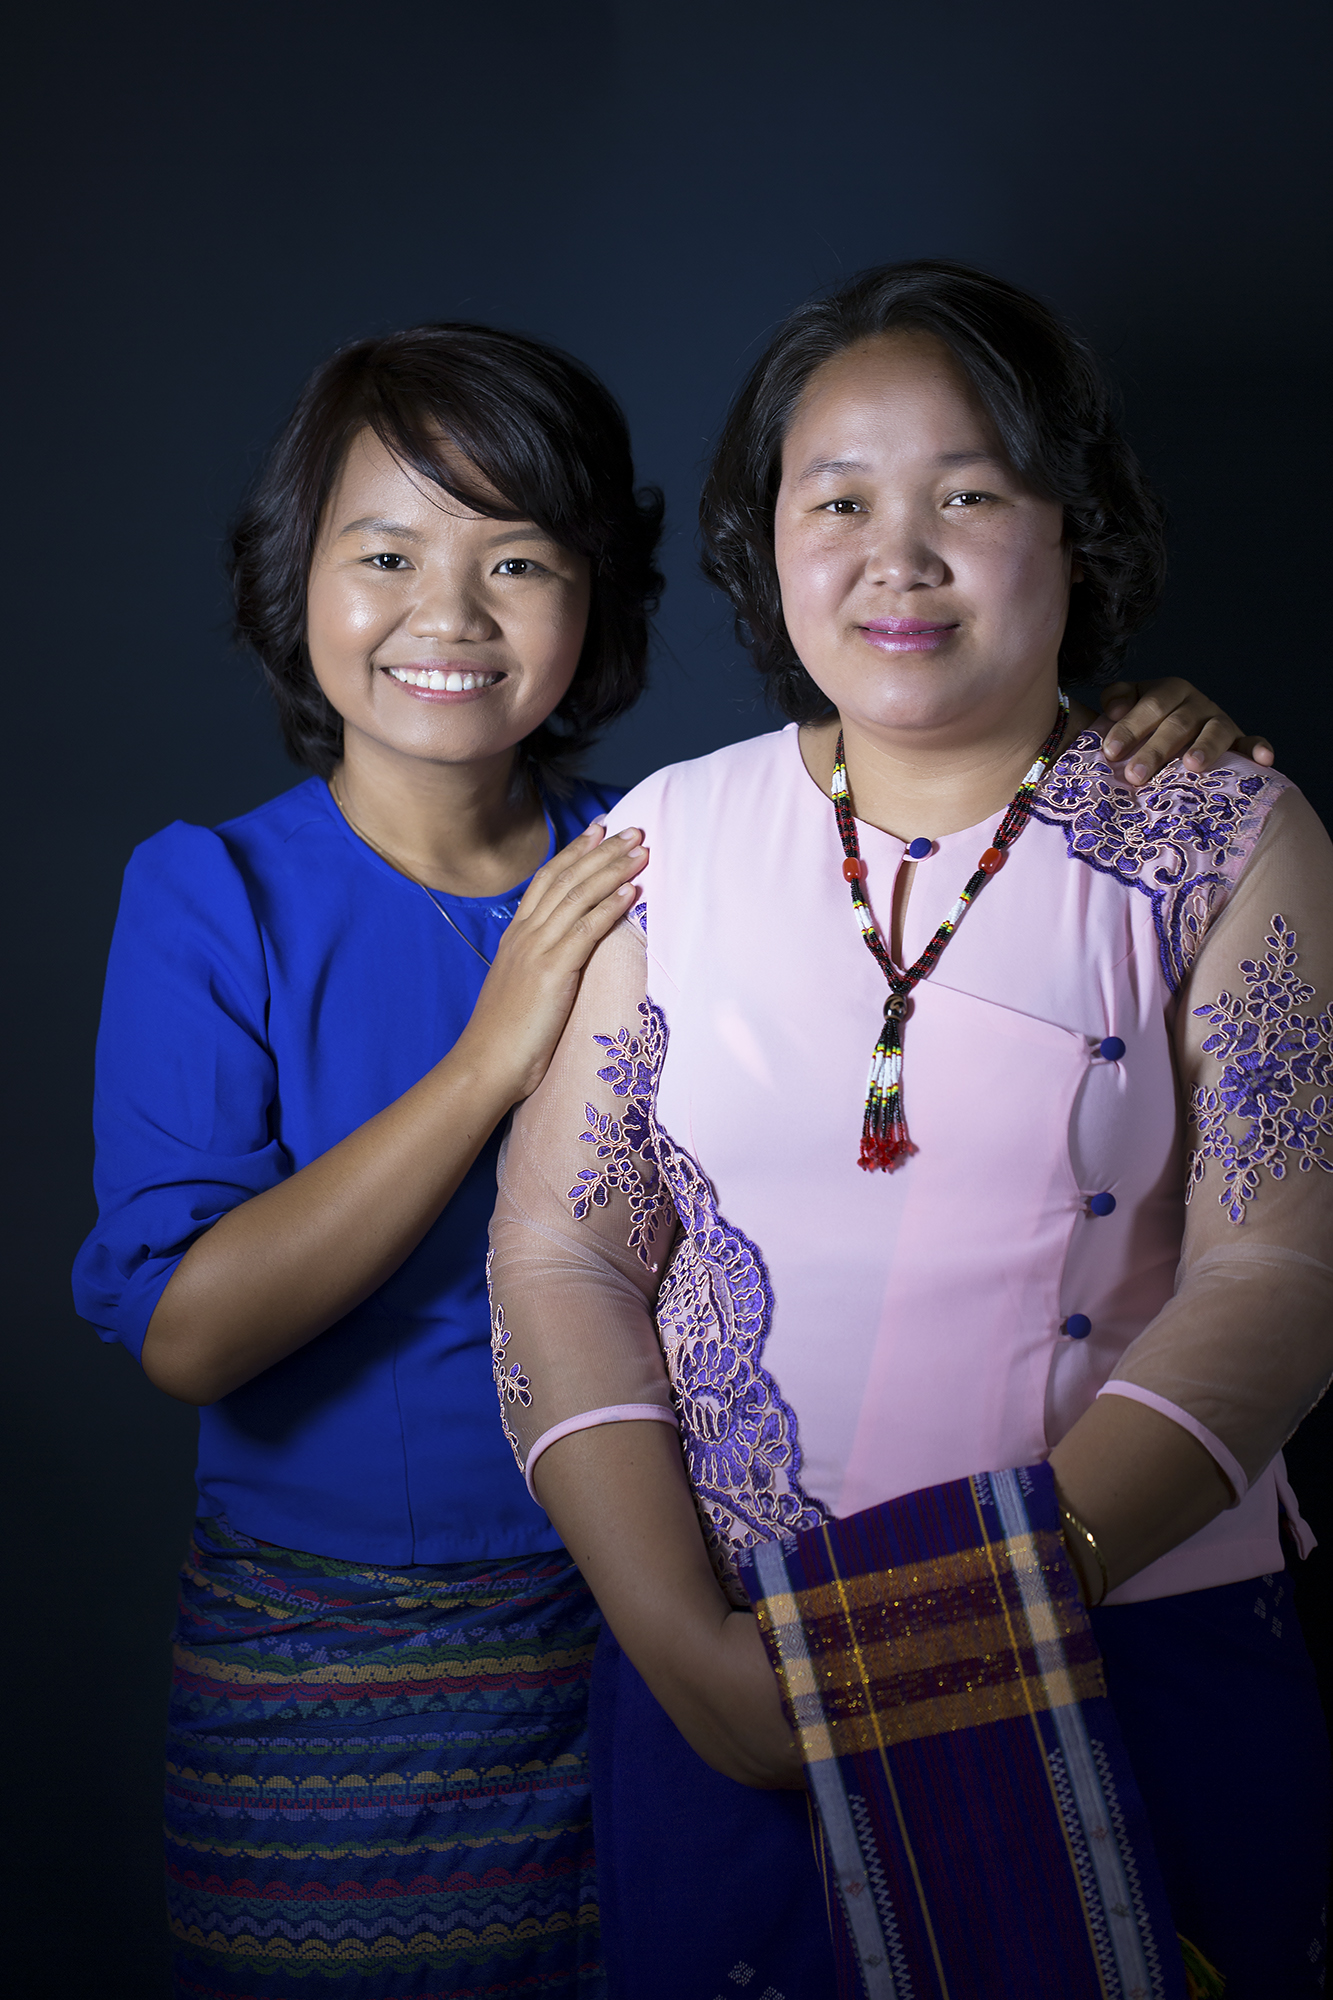 Sangi and Mimi - Myanmar